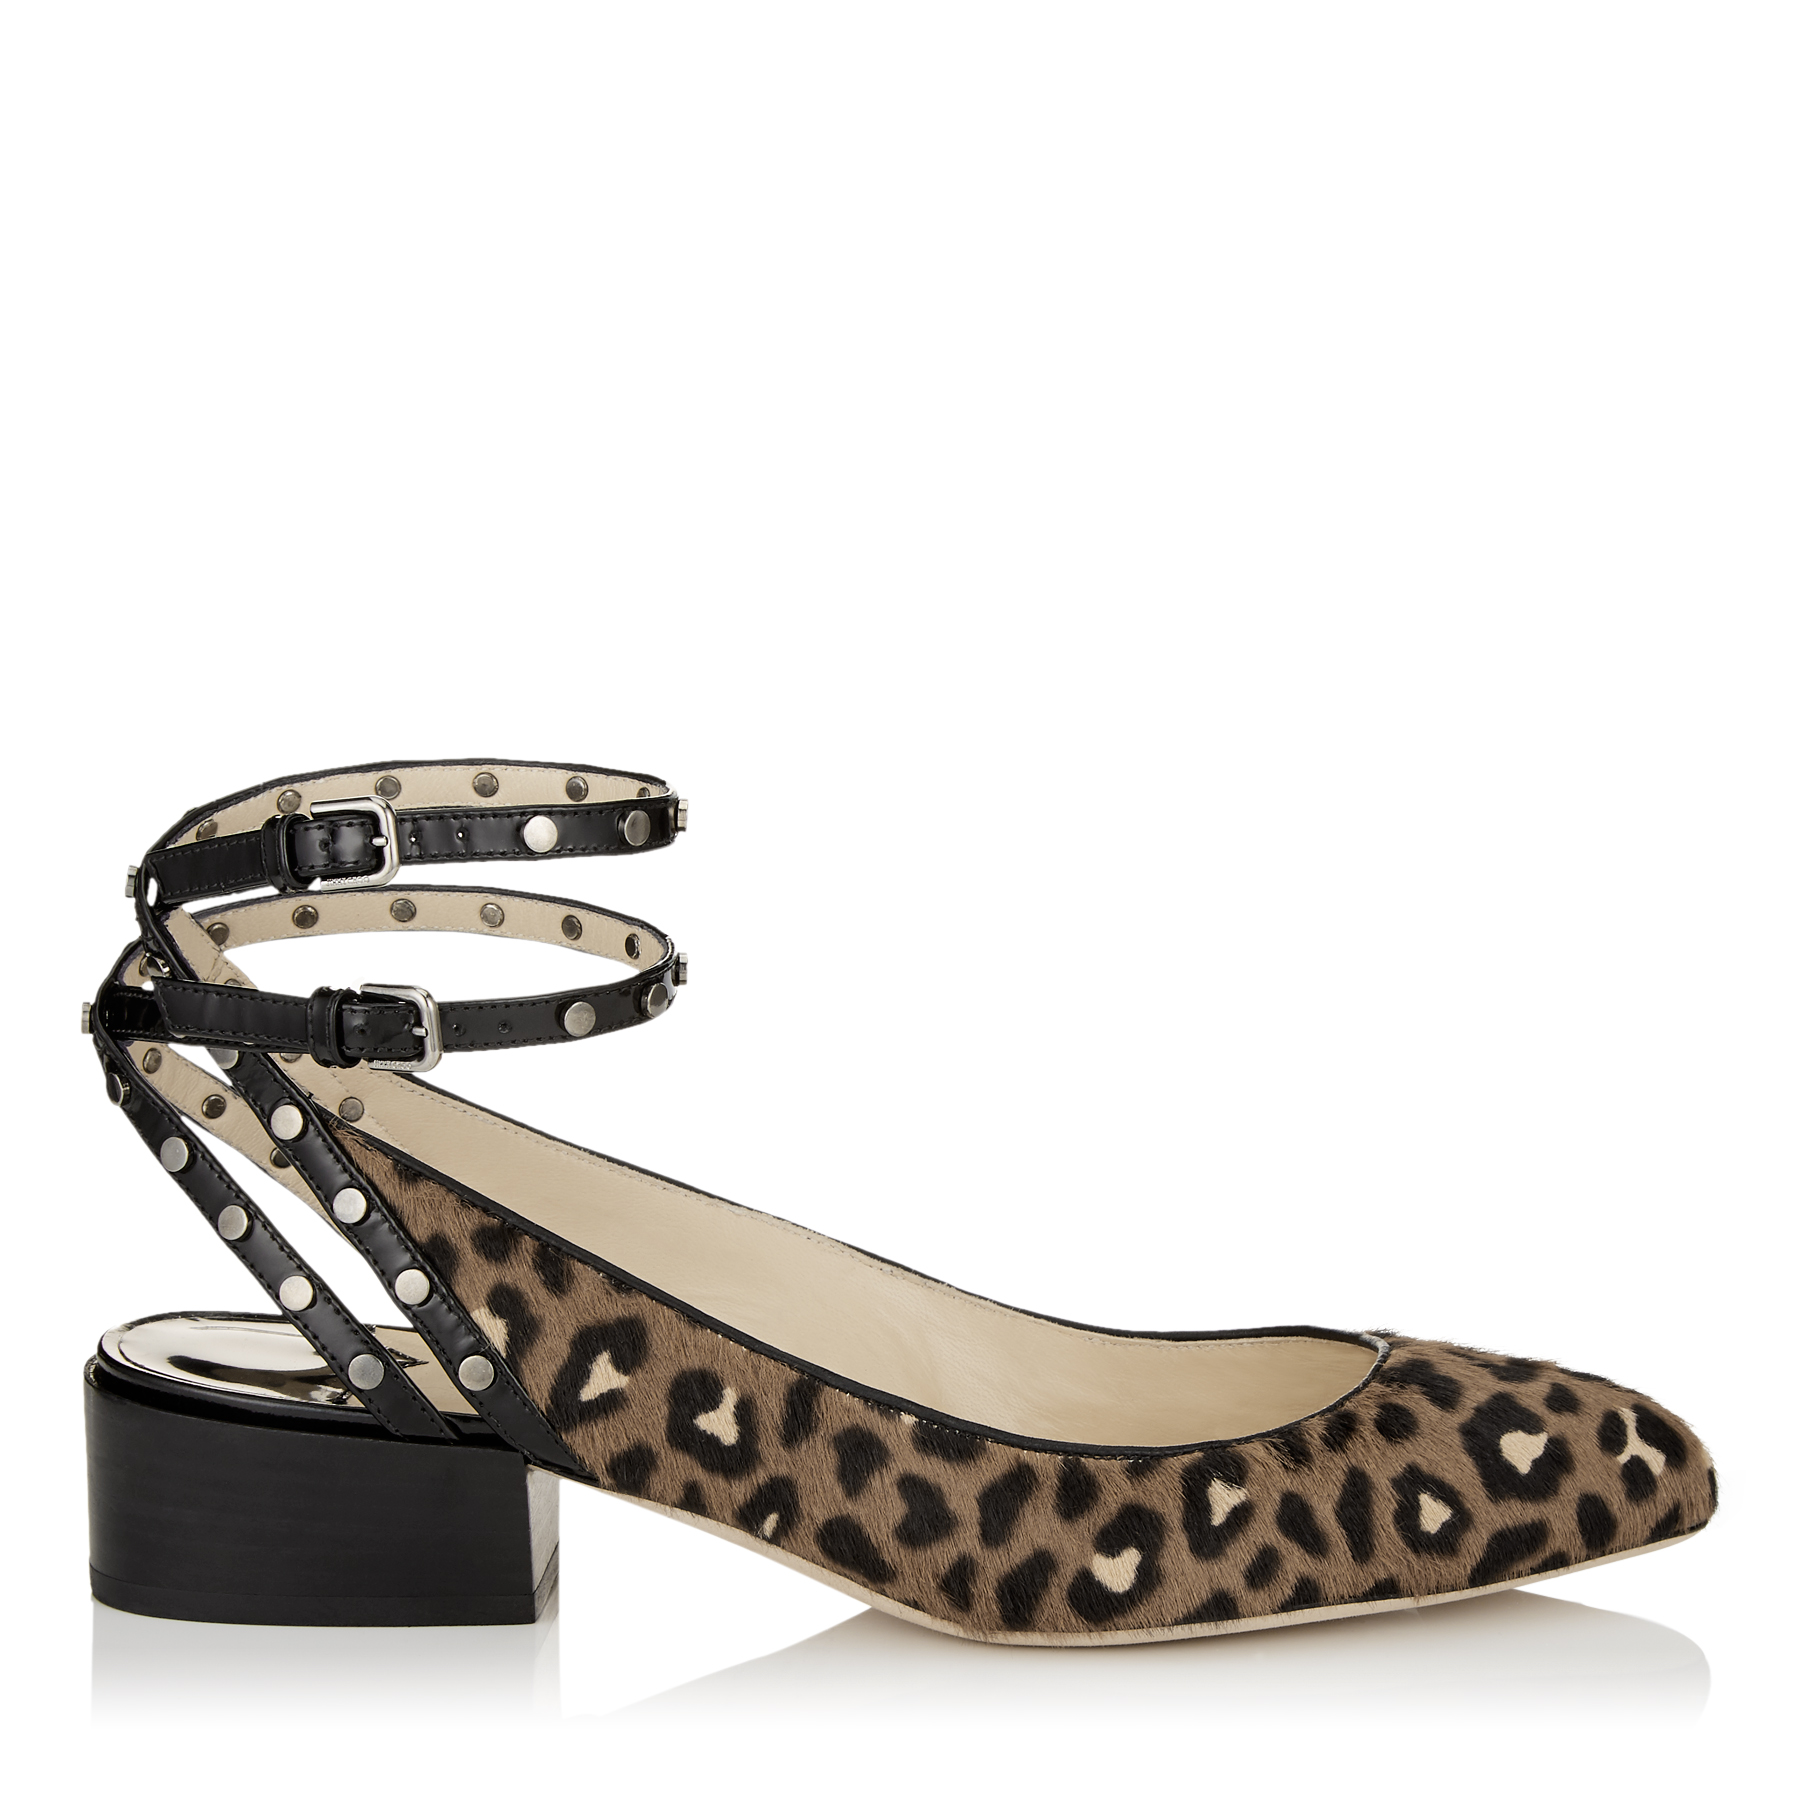 DANIELA 30 Hazelnut Mix Leopard Print Pony Round Toe Pumps by Jimmy Choo